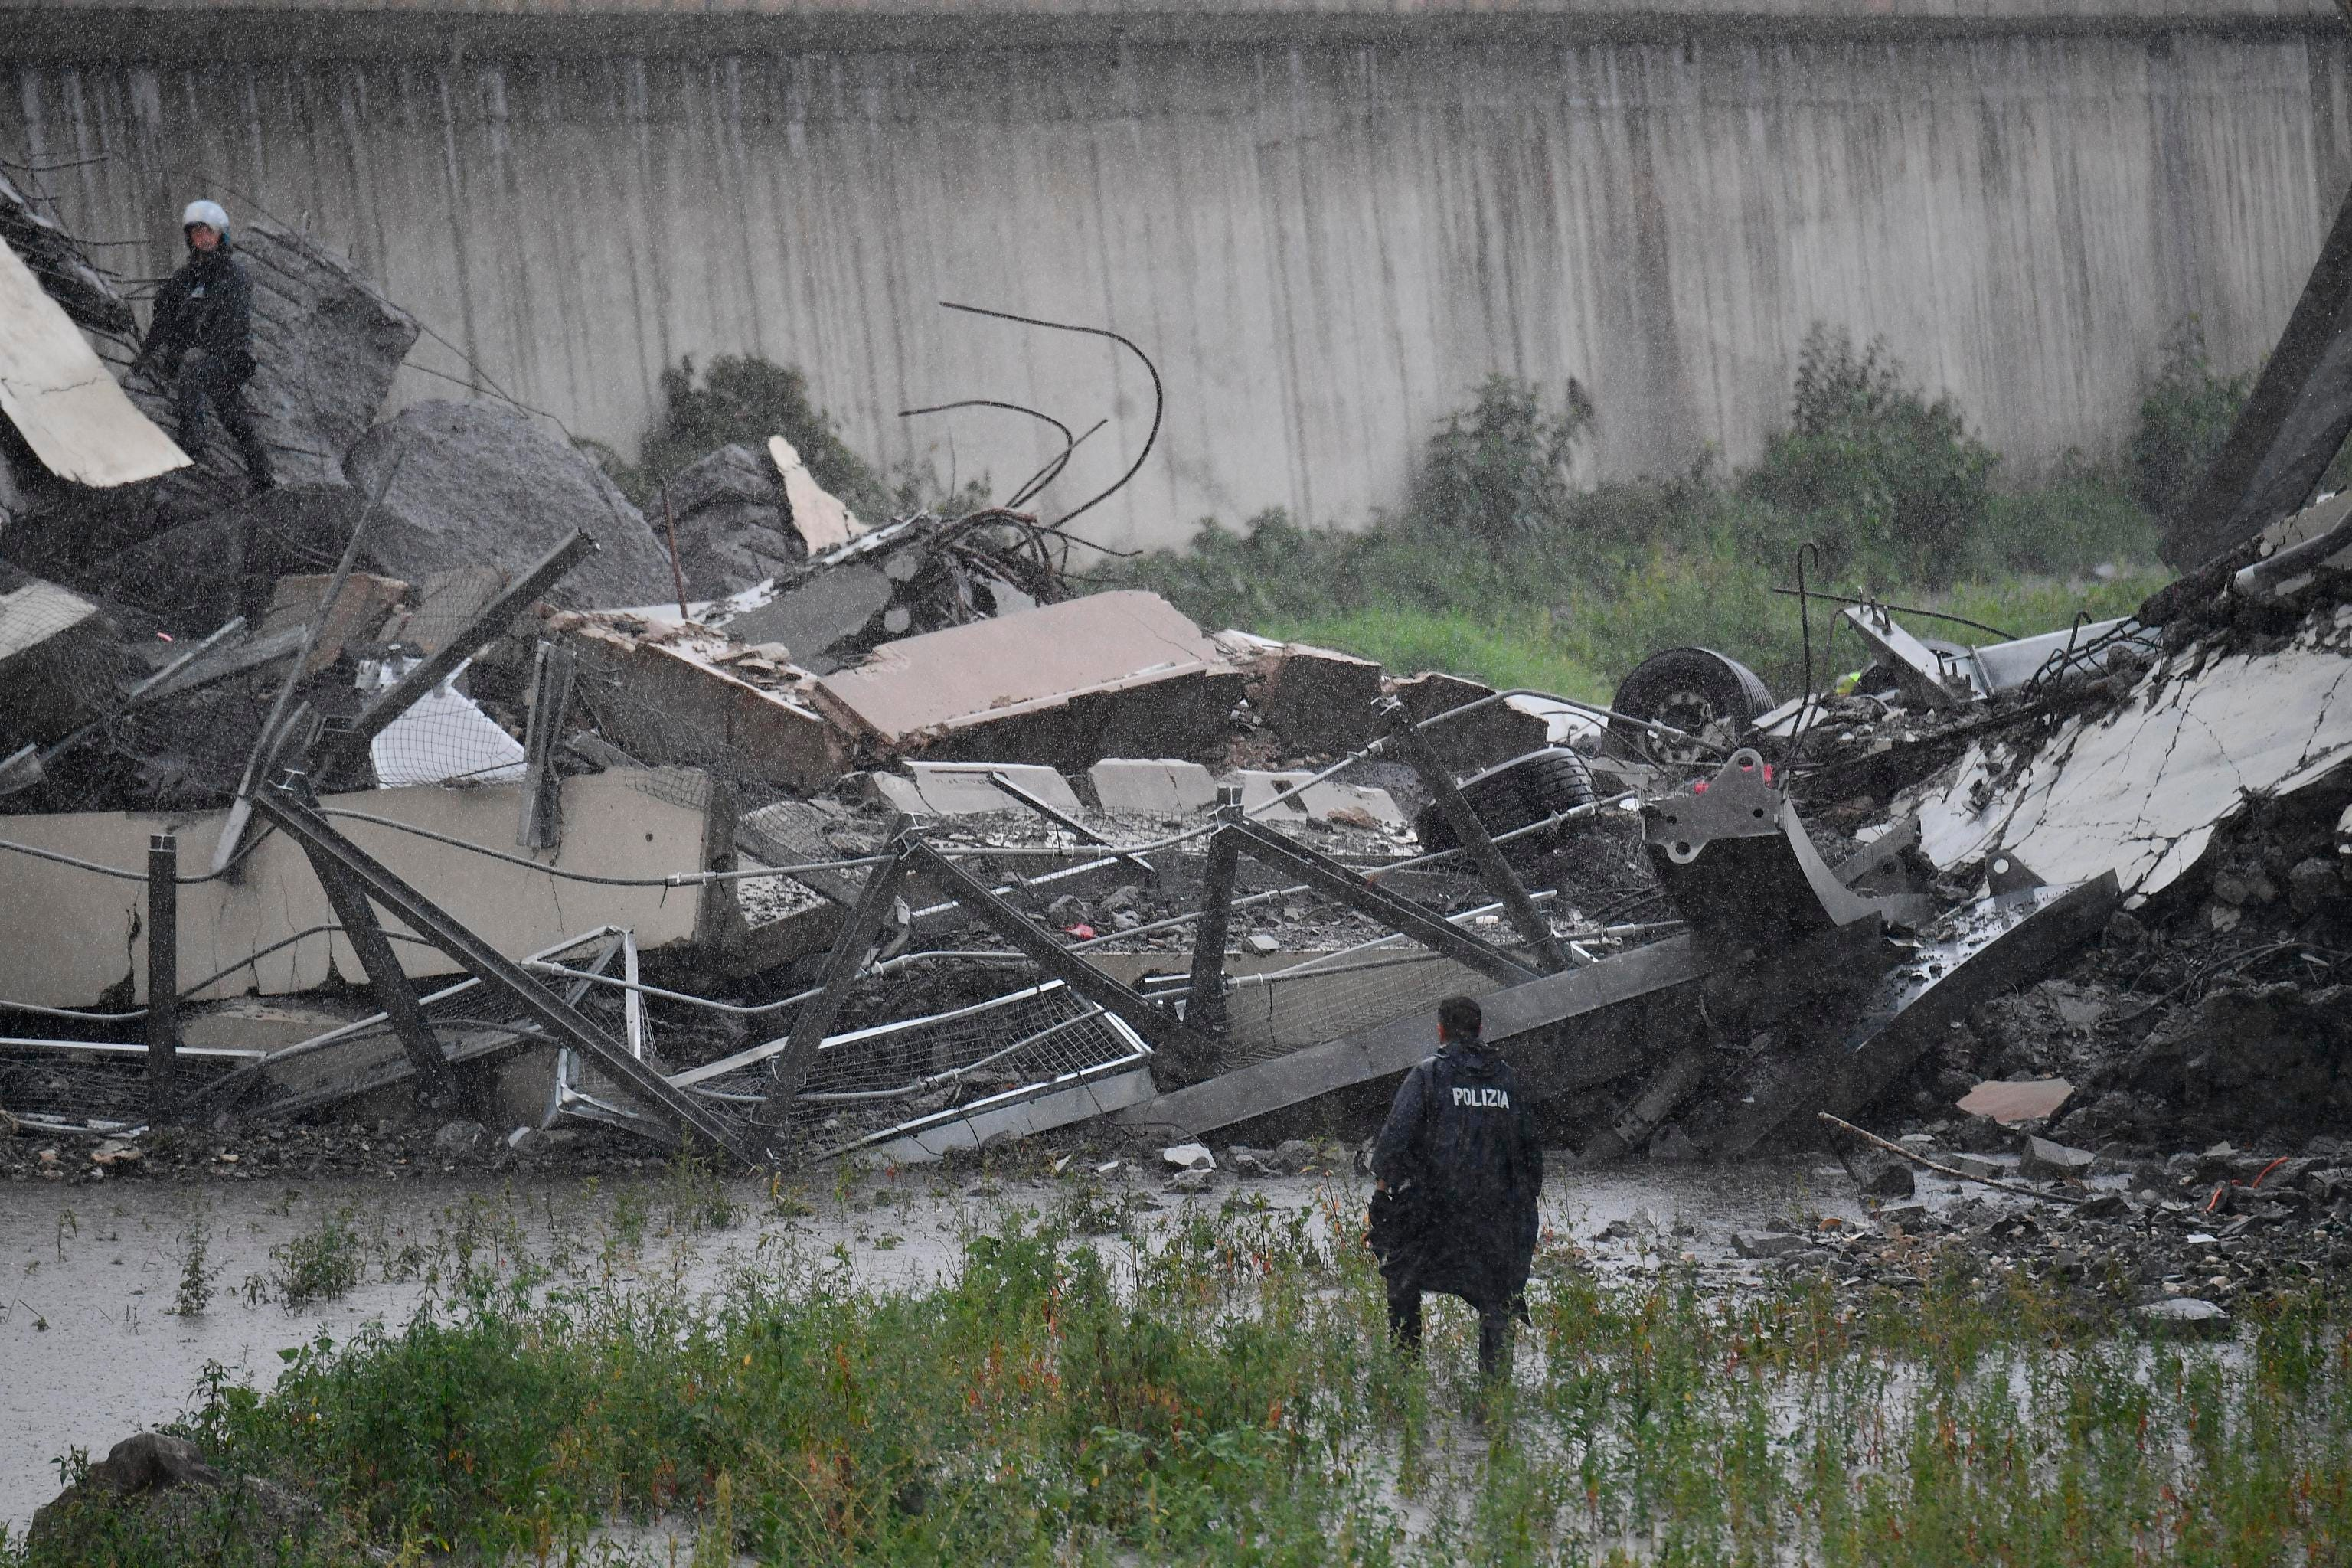 Cars plunge as highway bridge collapses in Italy; 22 dead | Argus Leader